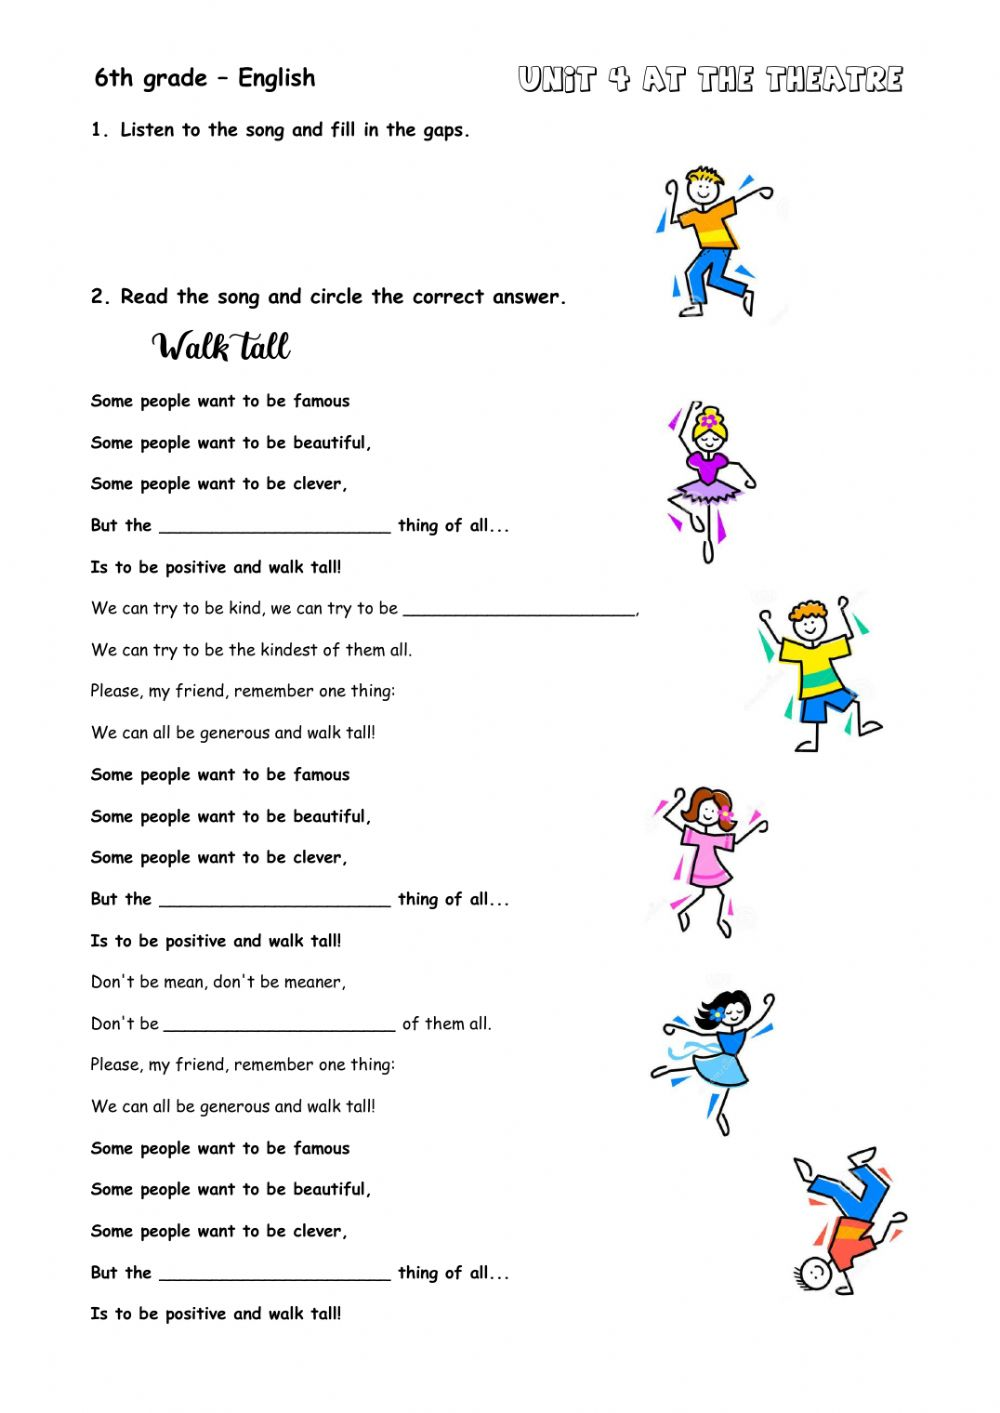 medium resolution of Comparative and superlative adjectives interactive exercise for Grade 6